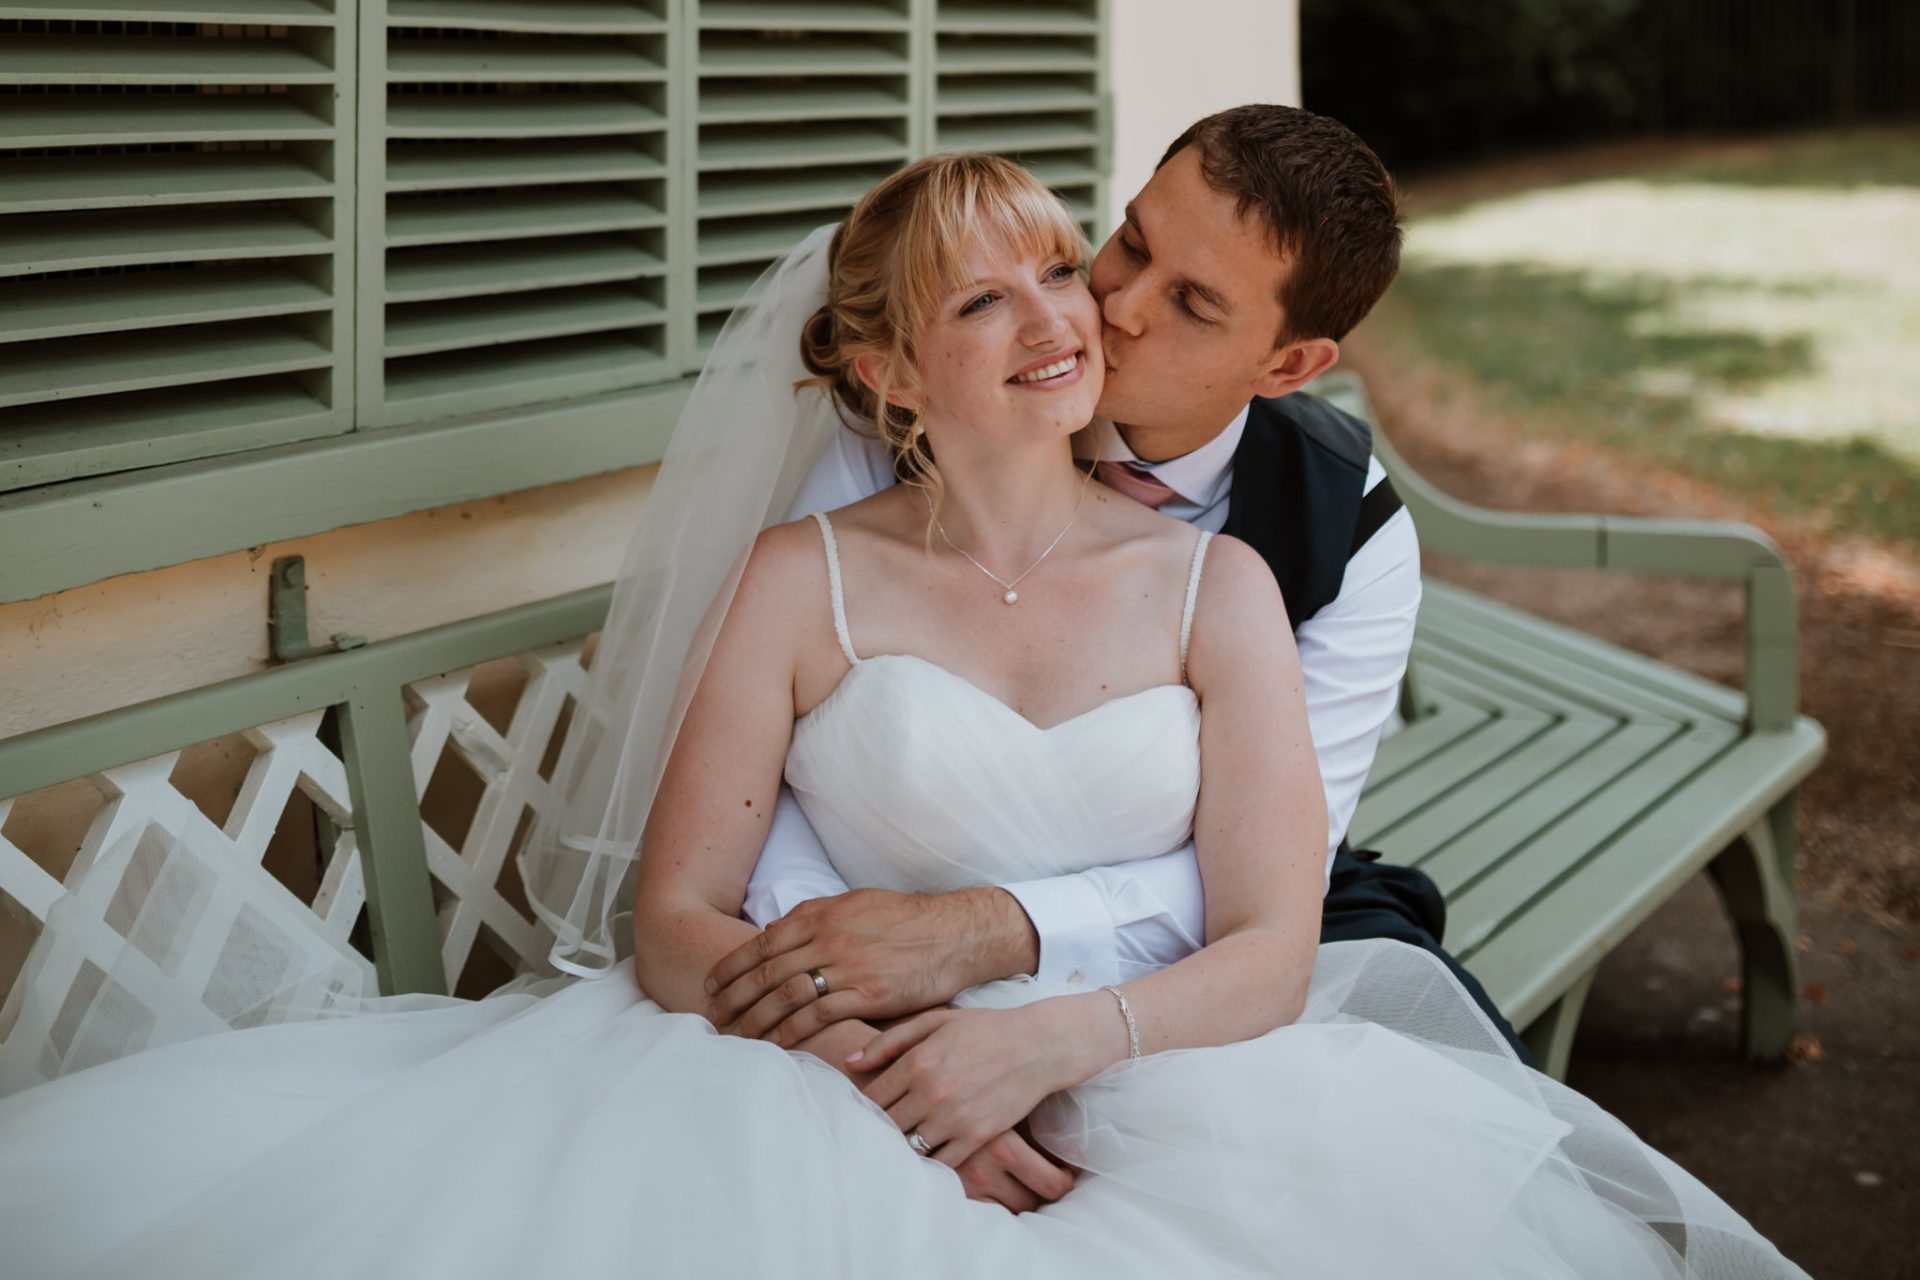 bride and groom sat on bench outside rustic house